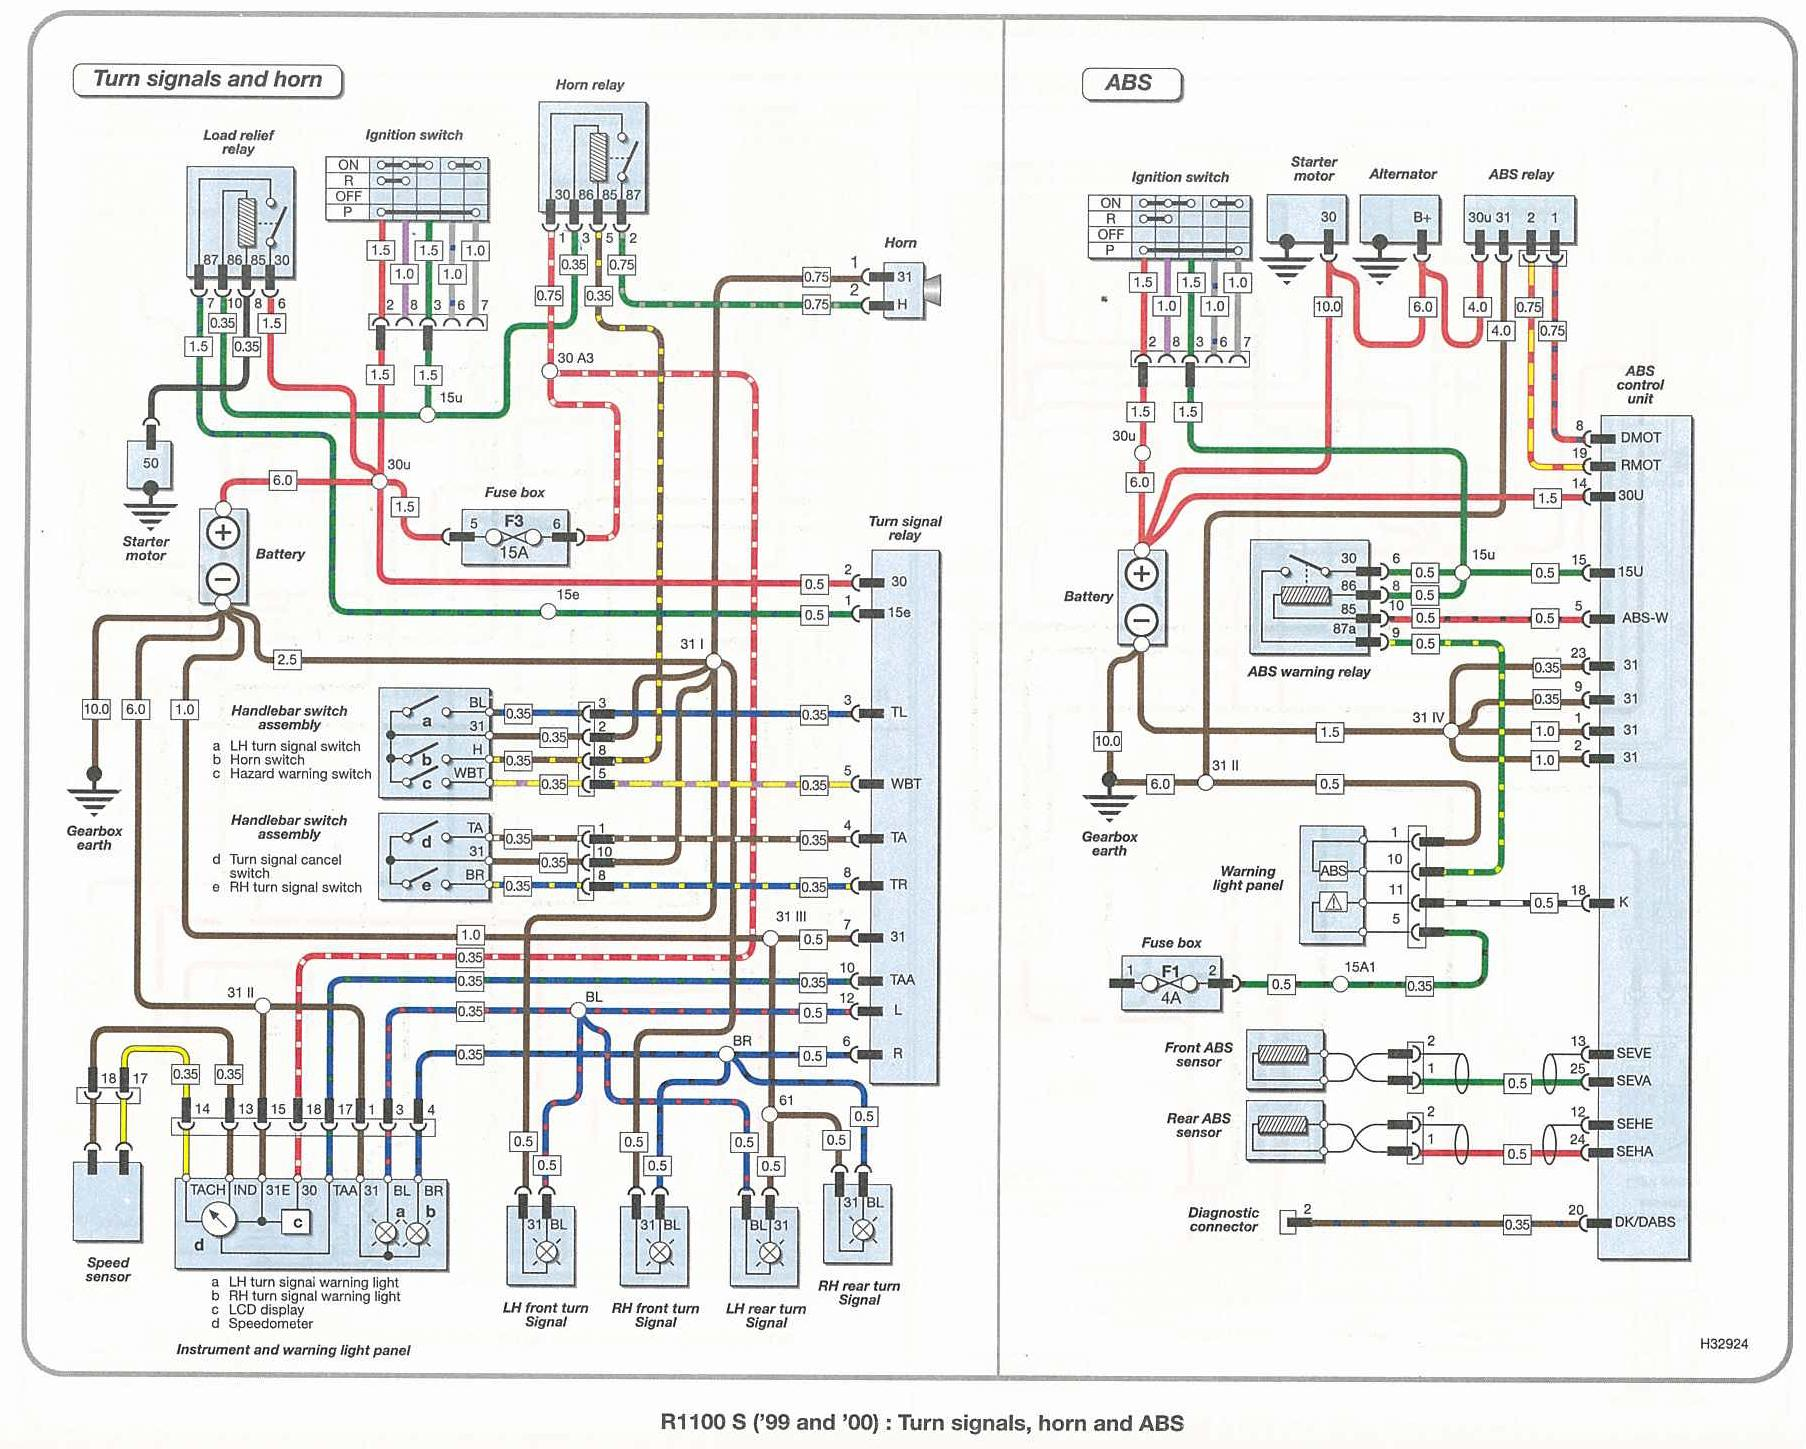 wiring03 bmw r1100s wiring diagrams 2003 bmw e46 wiring diagram at readyjetset.co